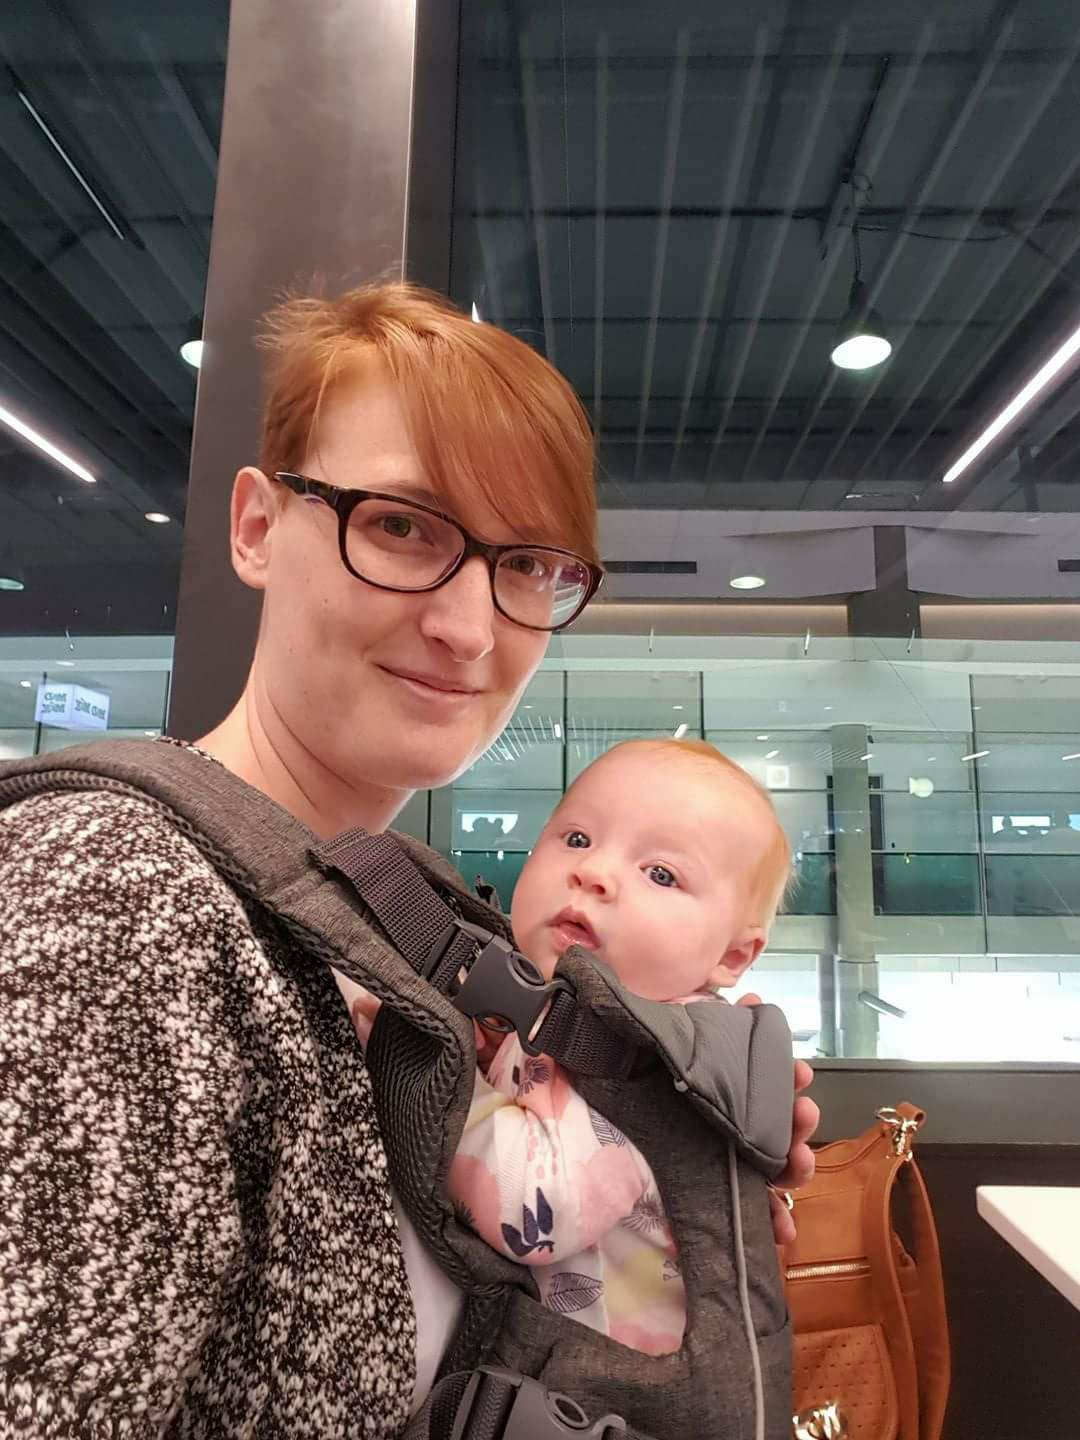 Red haired mother with baby in a carrier smiling at the camera.